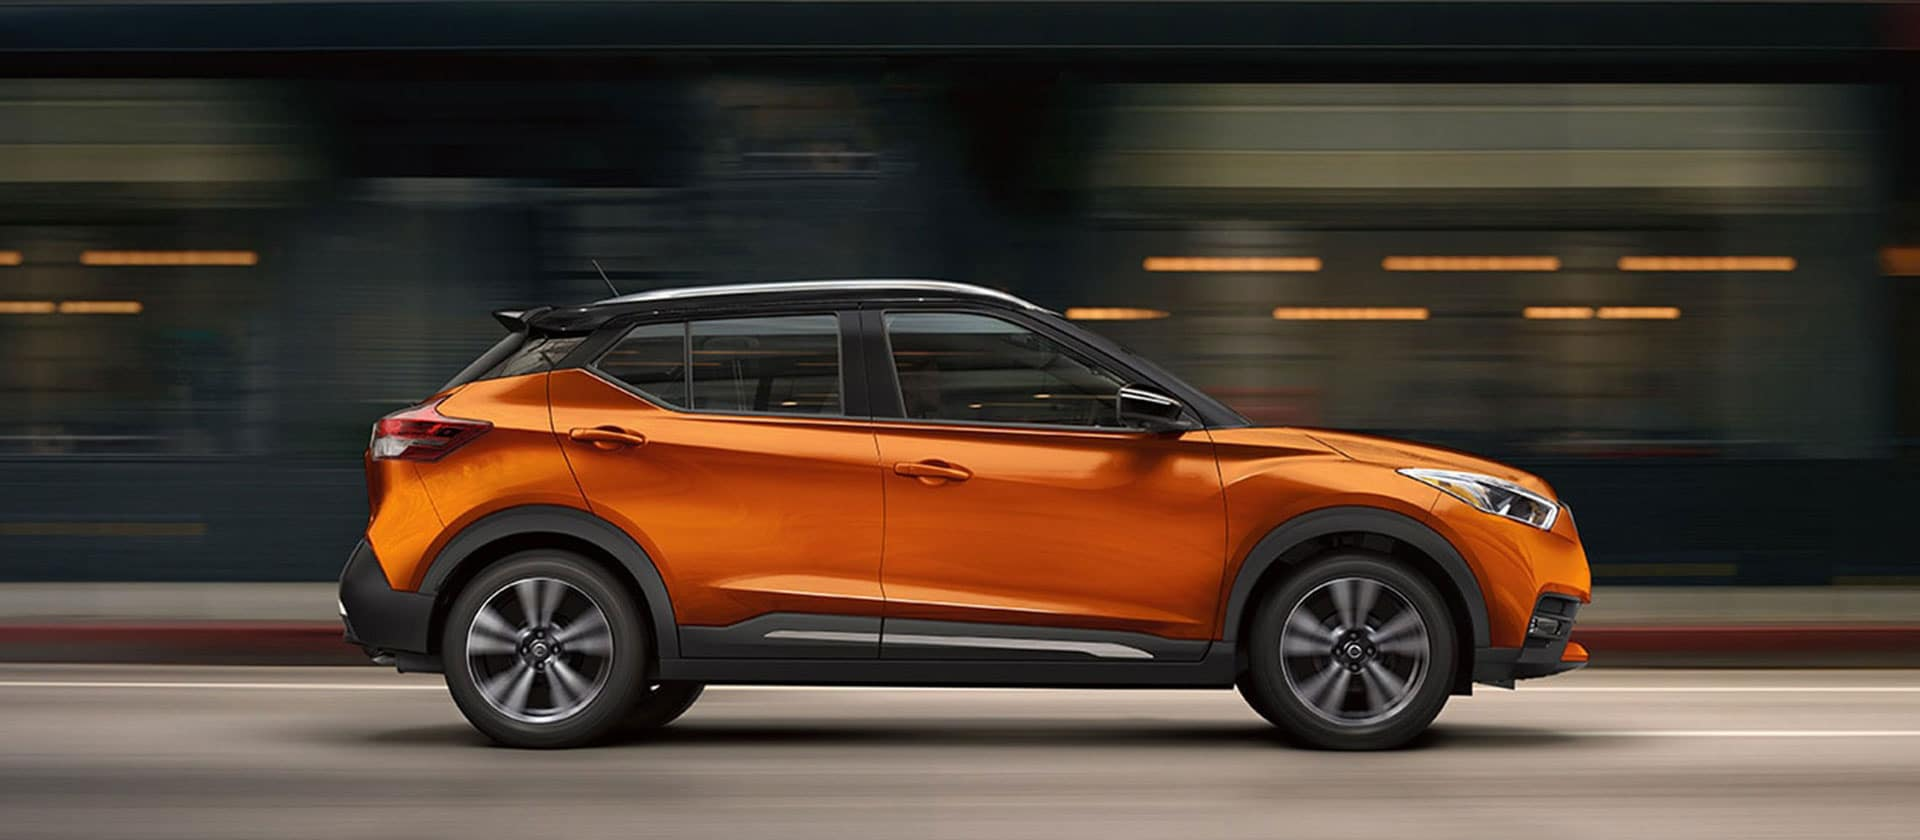 2020 Nissan Kicks in Shelbyville Tennessee